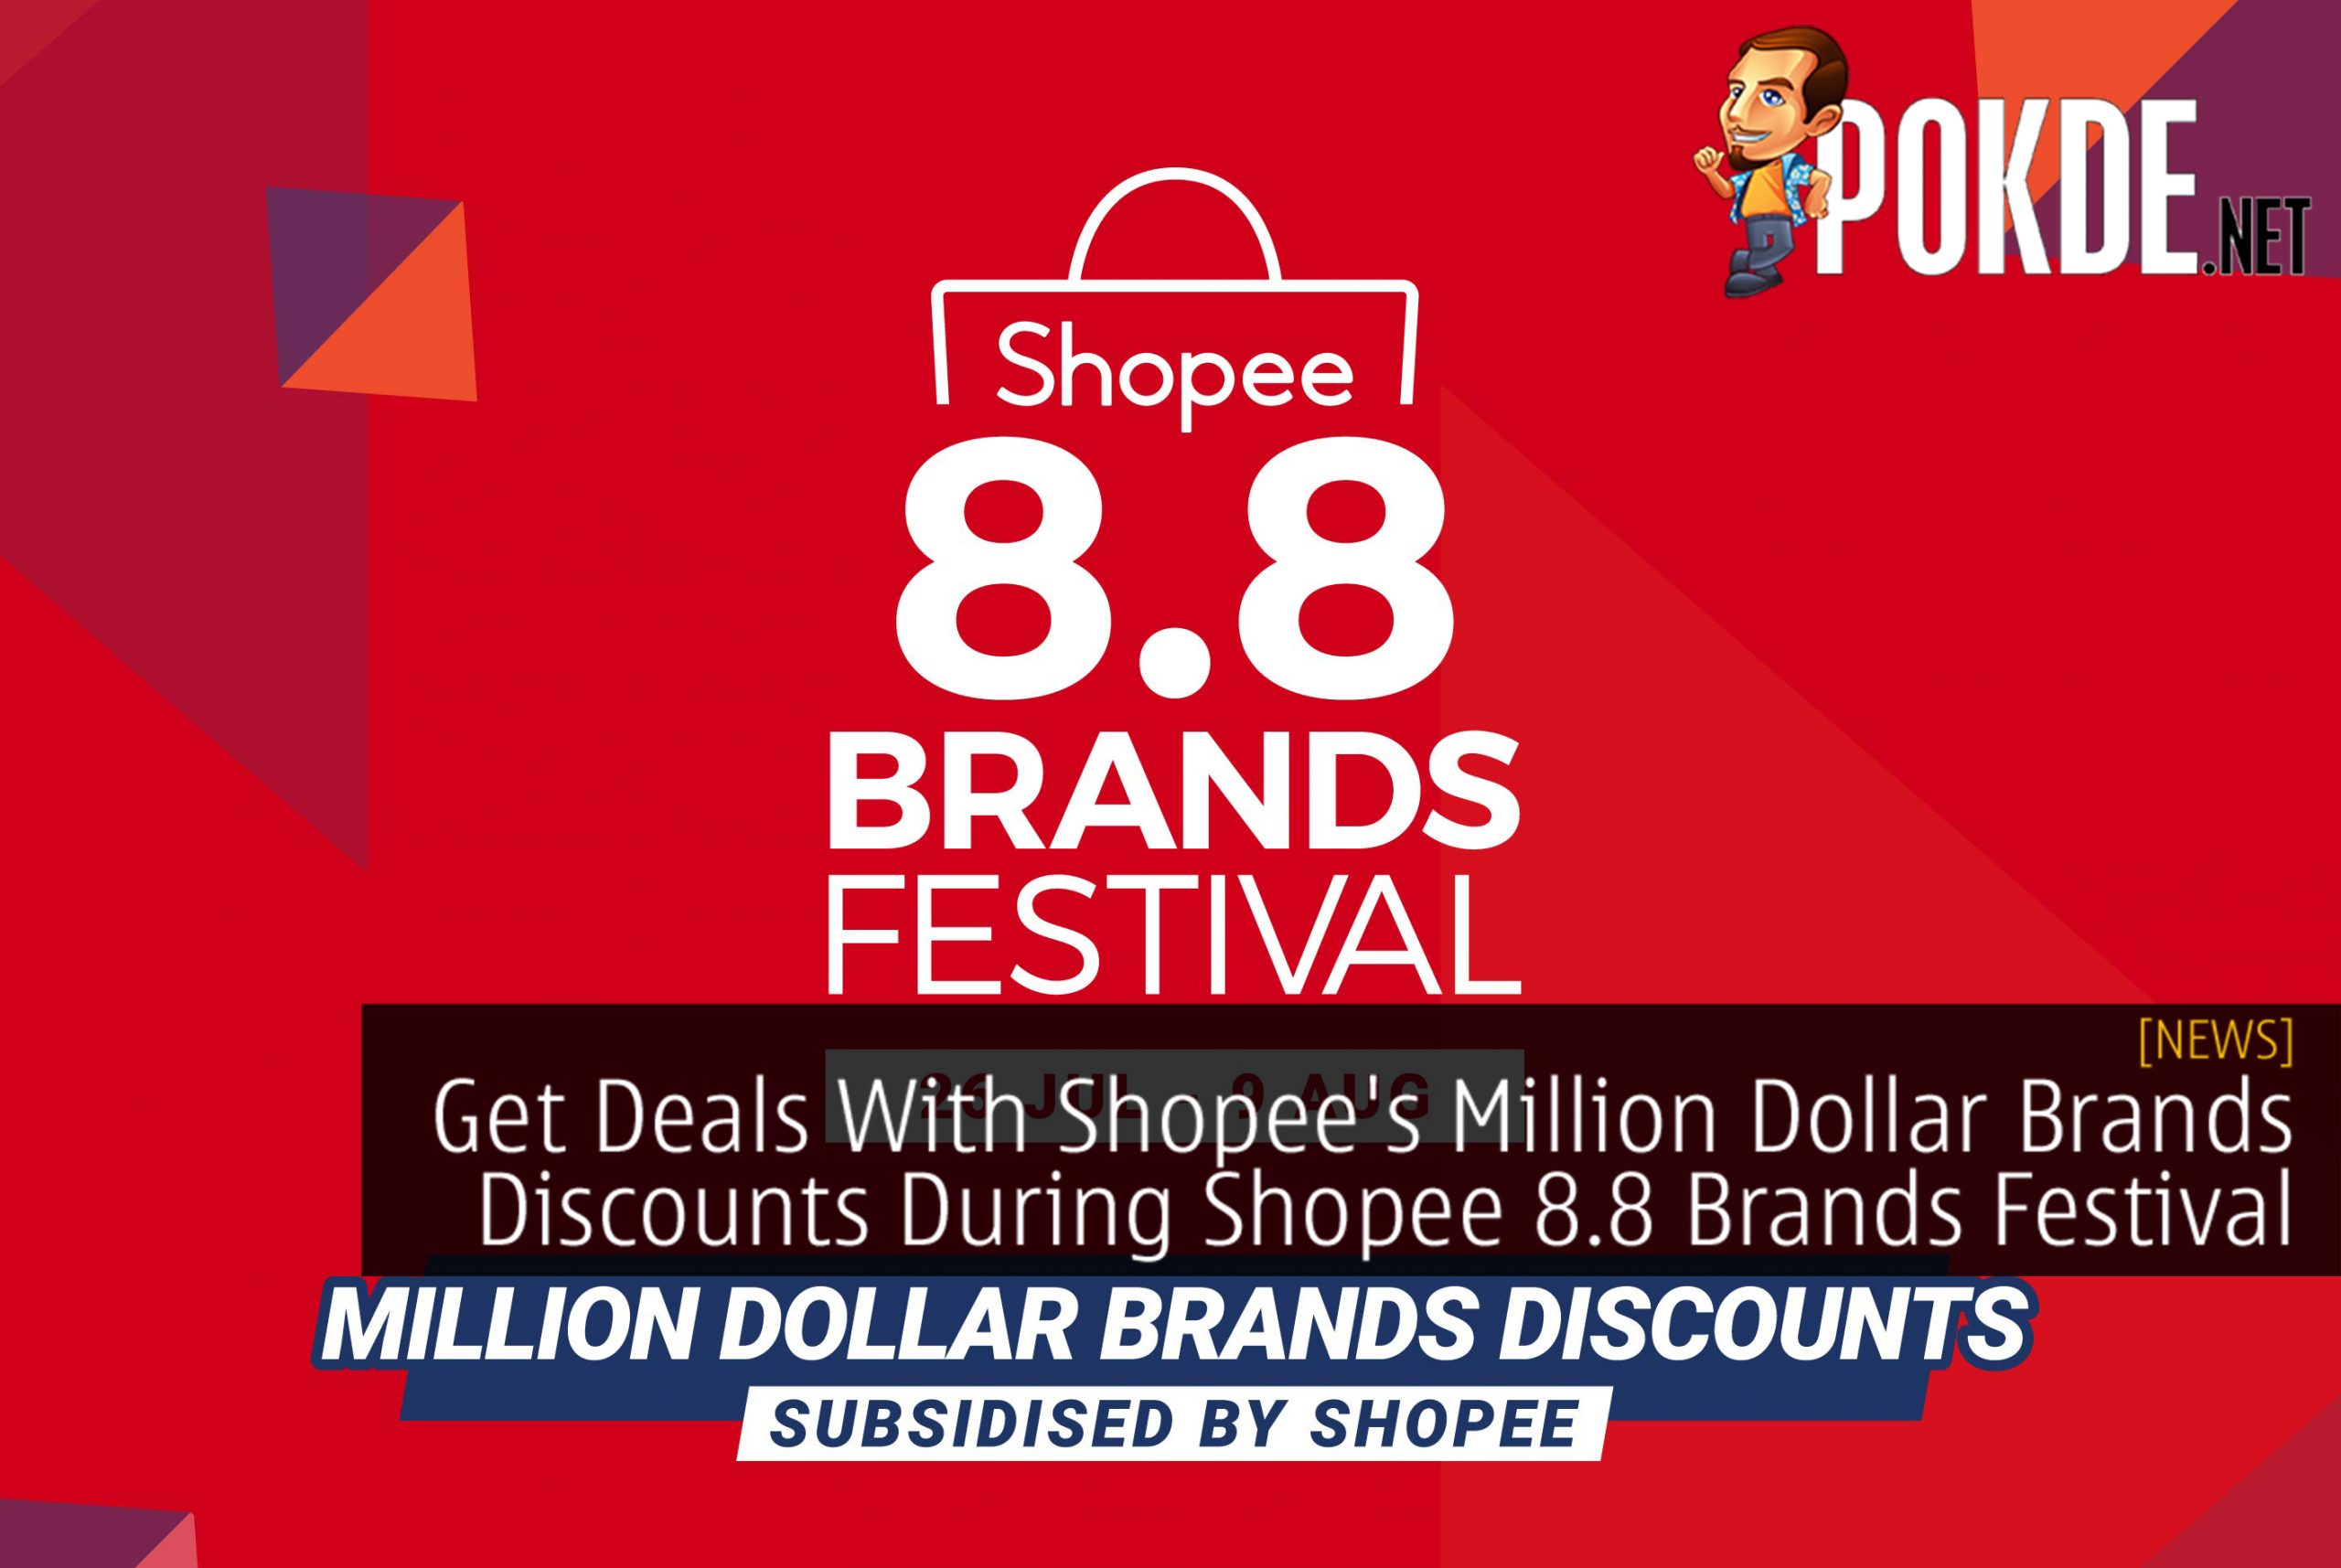 Get Deals Up To 96% Off With Shopee's Million Dollar Brands Discounts During Shopee 8.8 Brands Festival 10